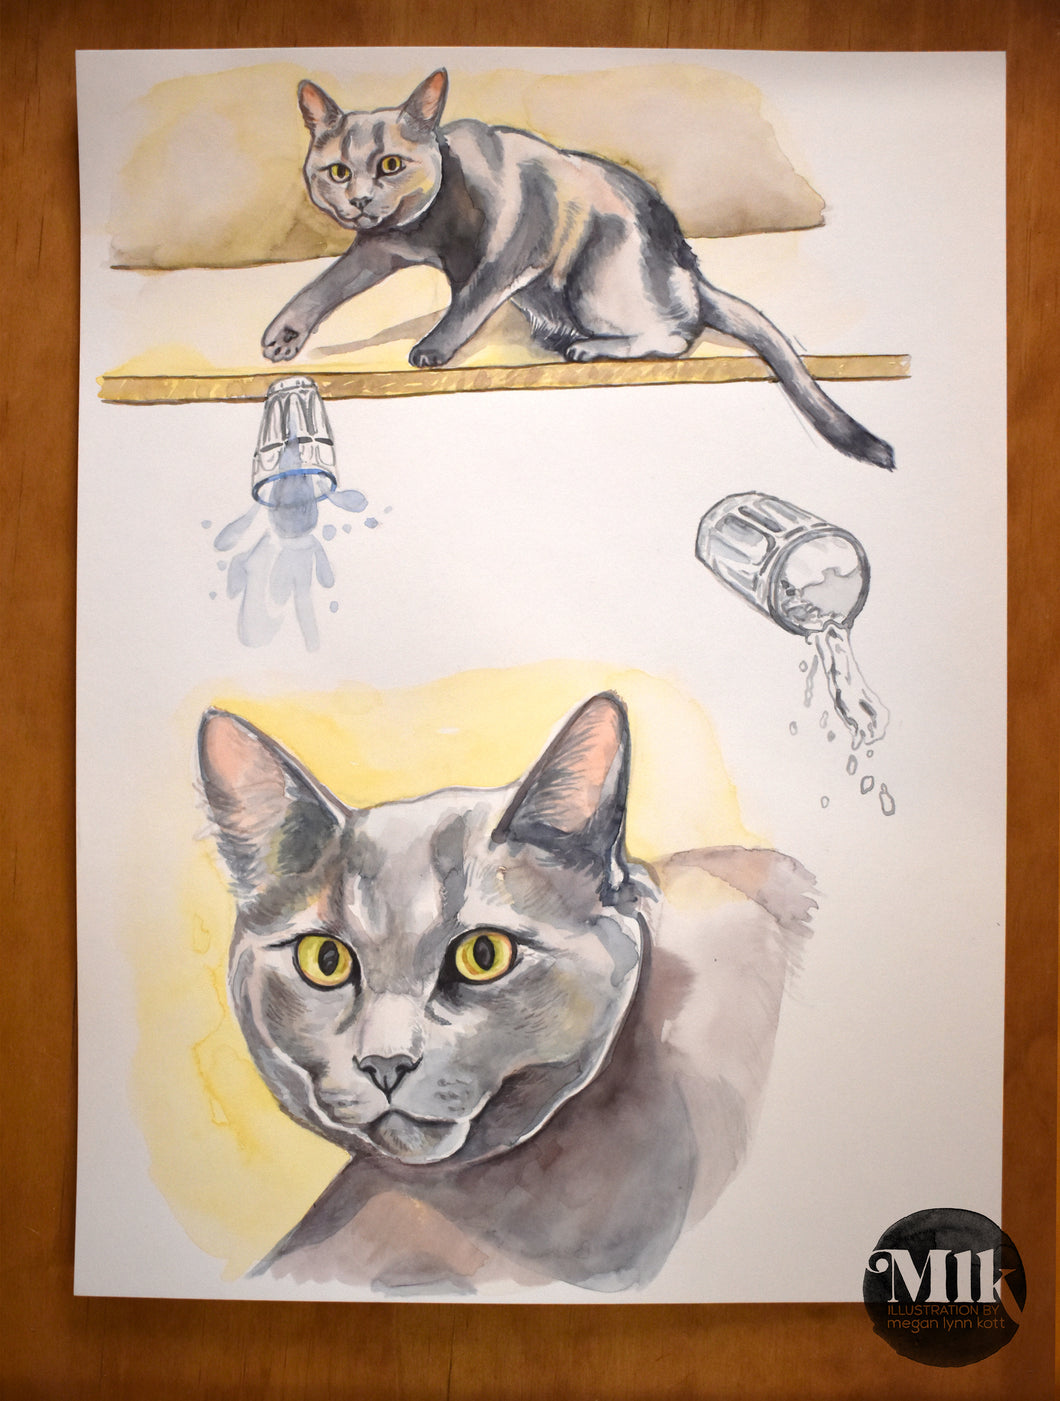 Cats Hate Water - Original Watercolor Painting 9 x 12